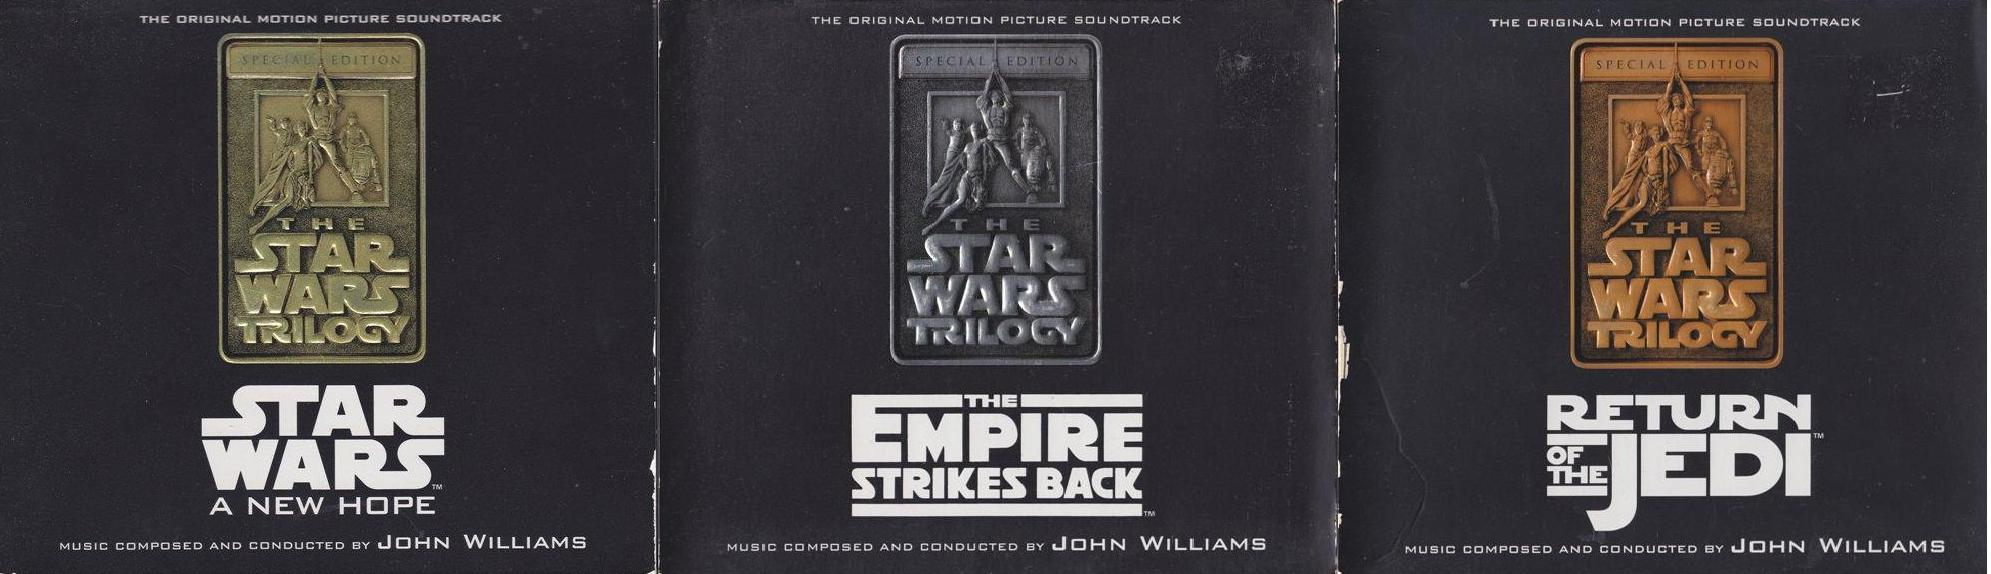 Review Star Wars A New Hope Special Edition Original Motion Picture Soundtrack Mikeladano Com